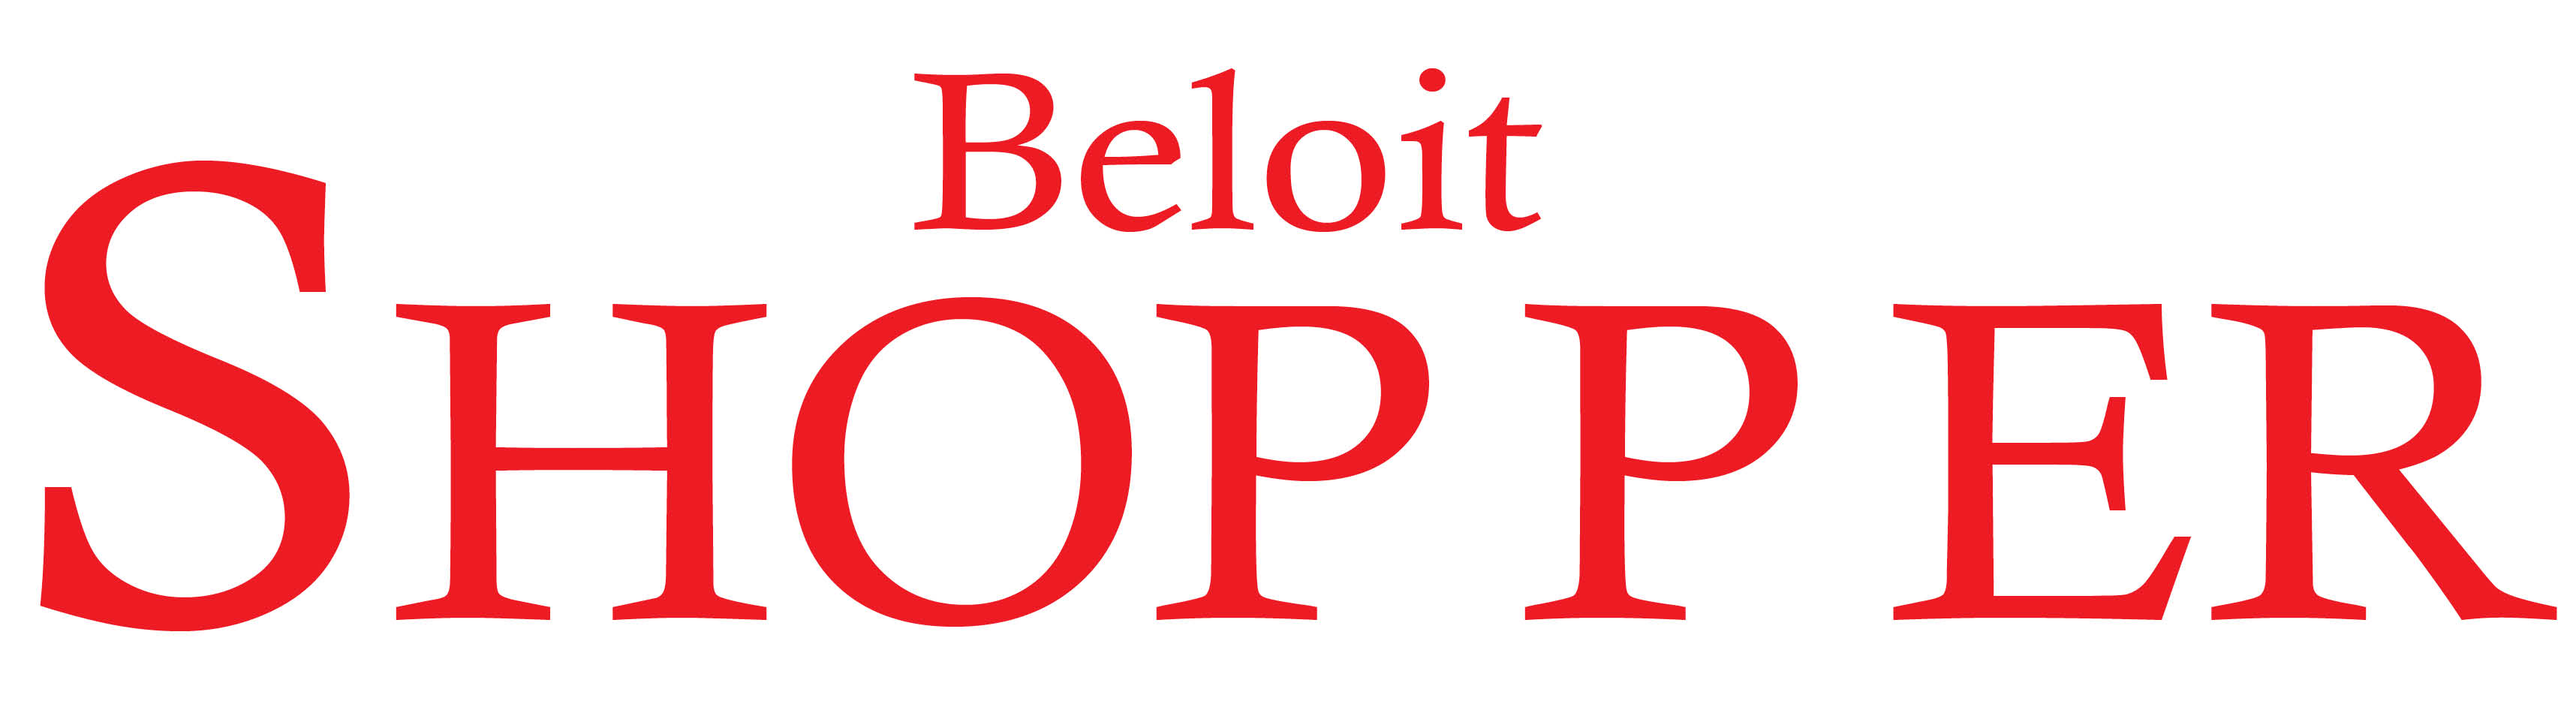 7/20/17 Beloit Shopper